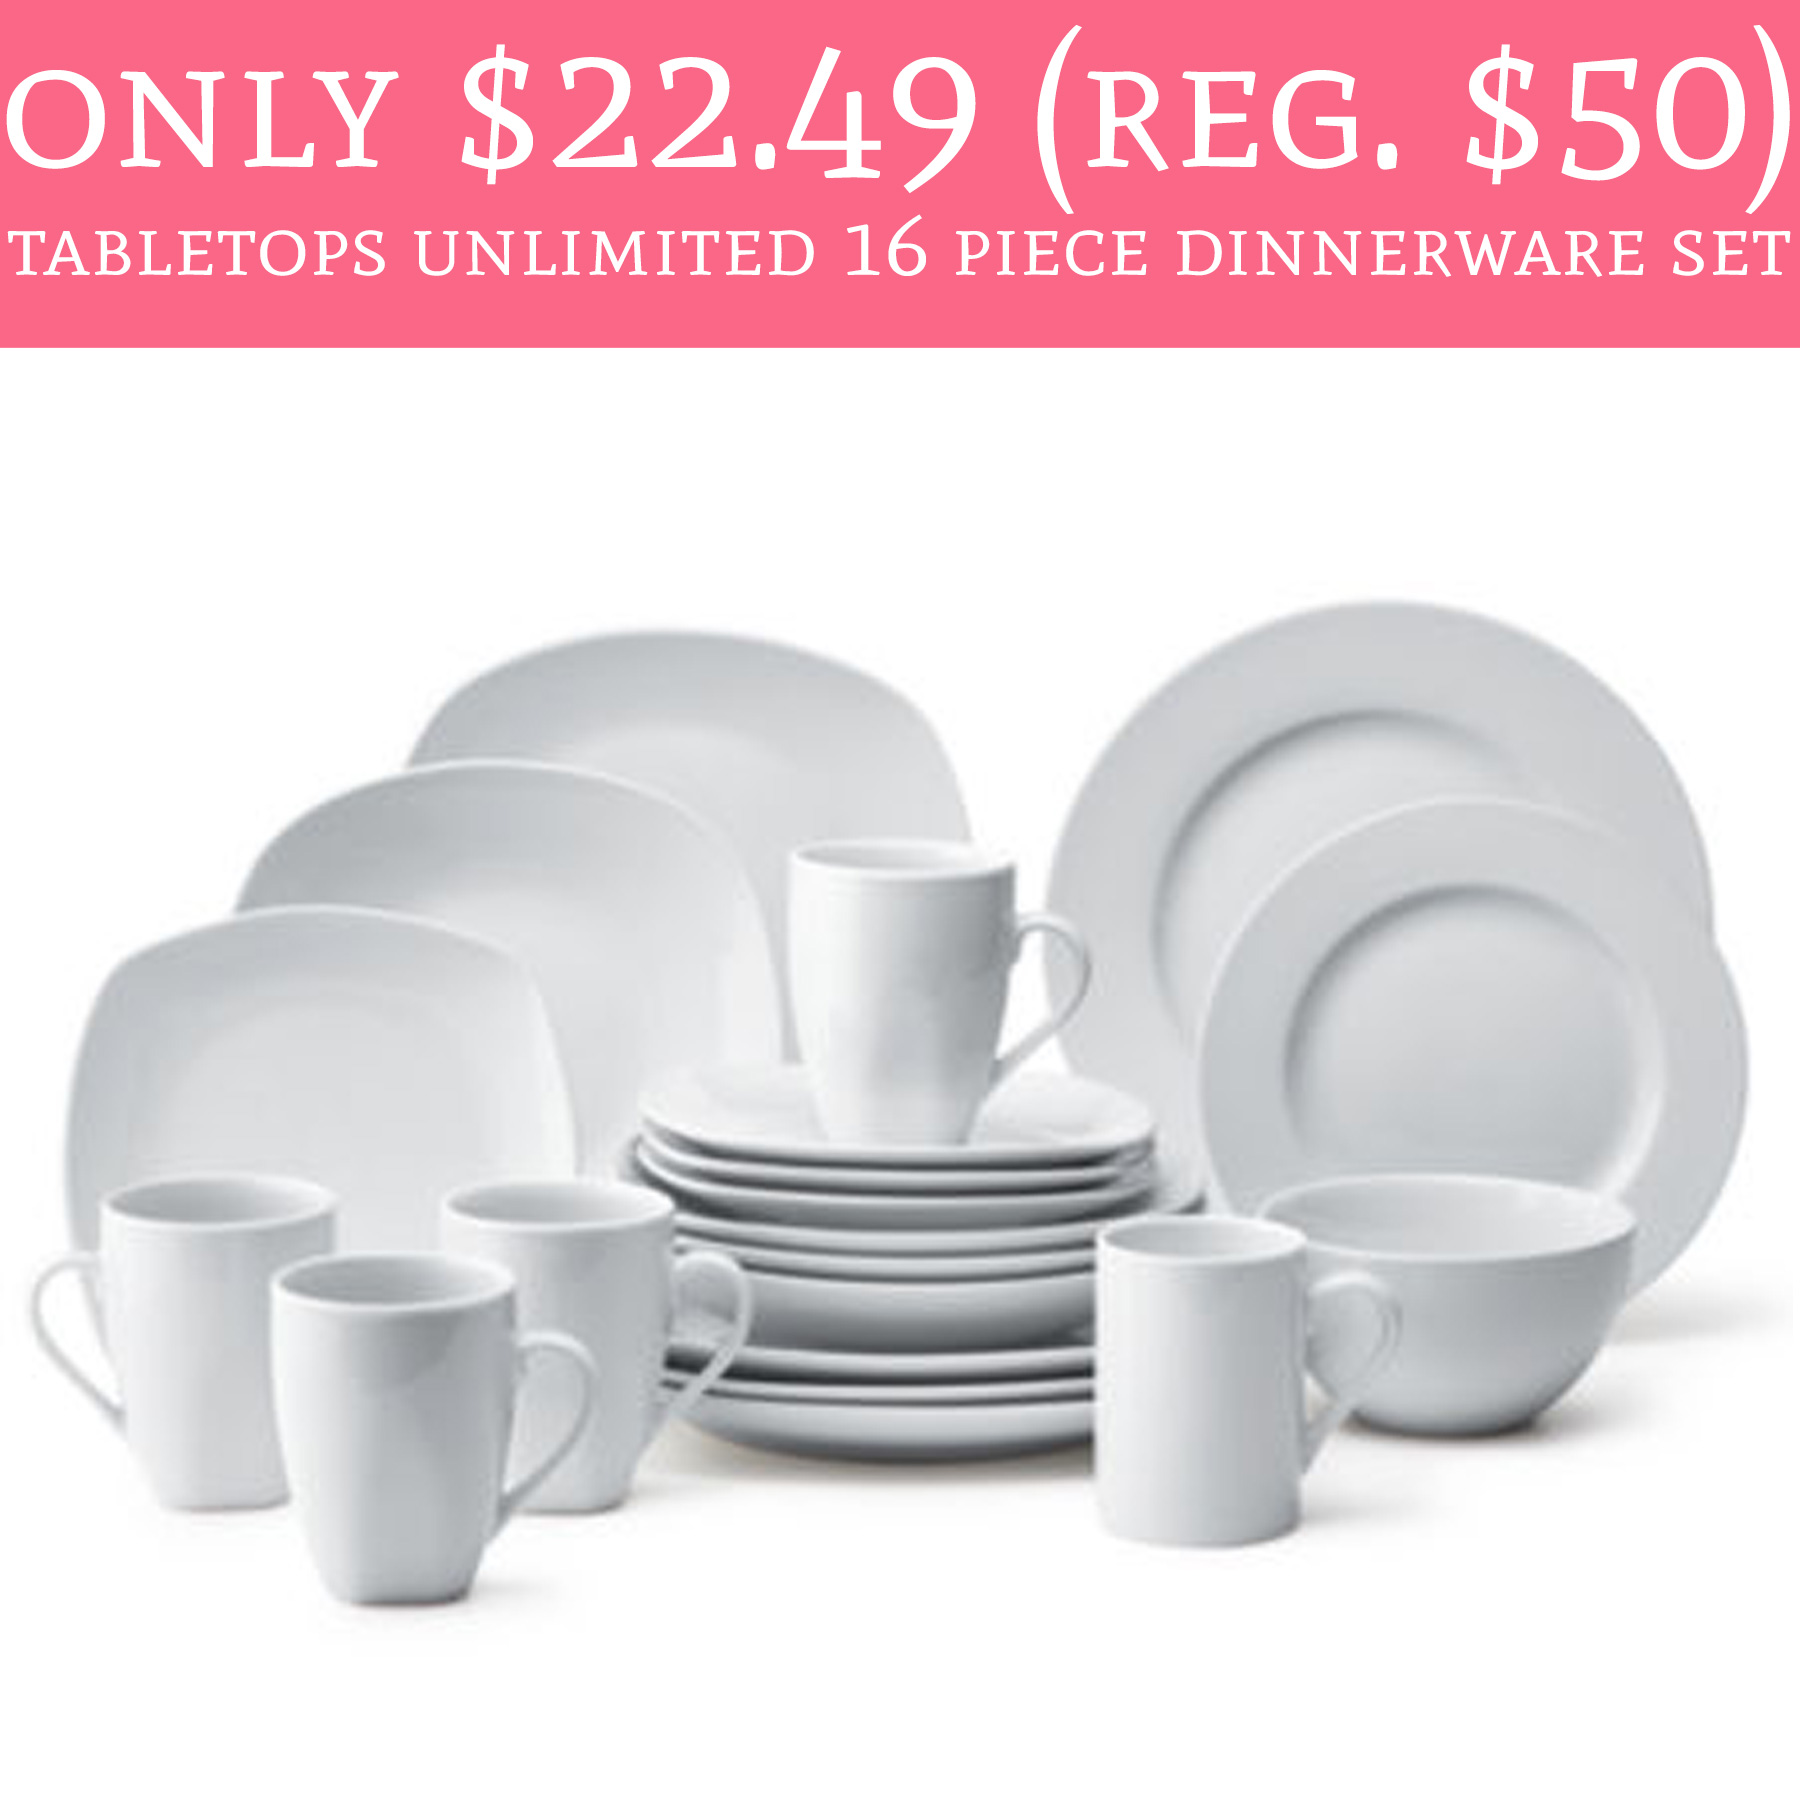 Only $22.49 (Regular $50) Tabletops Unlimited 16 Piece Dinnerware ...